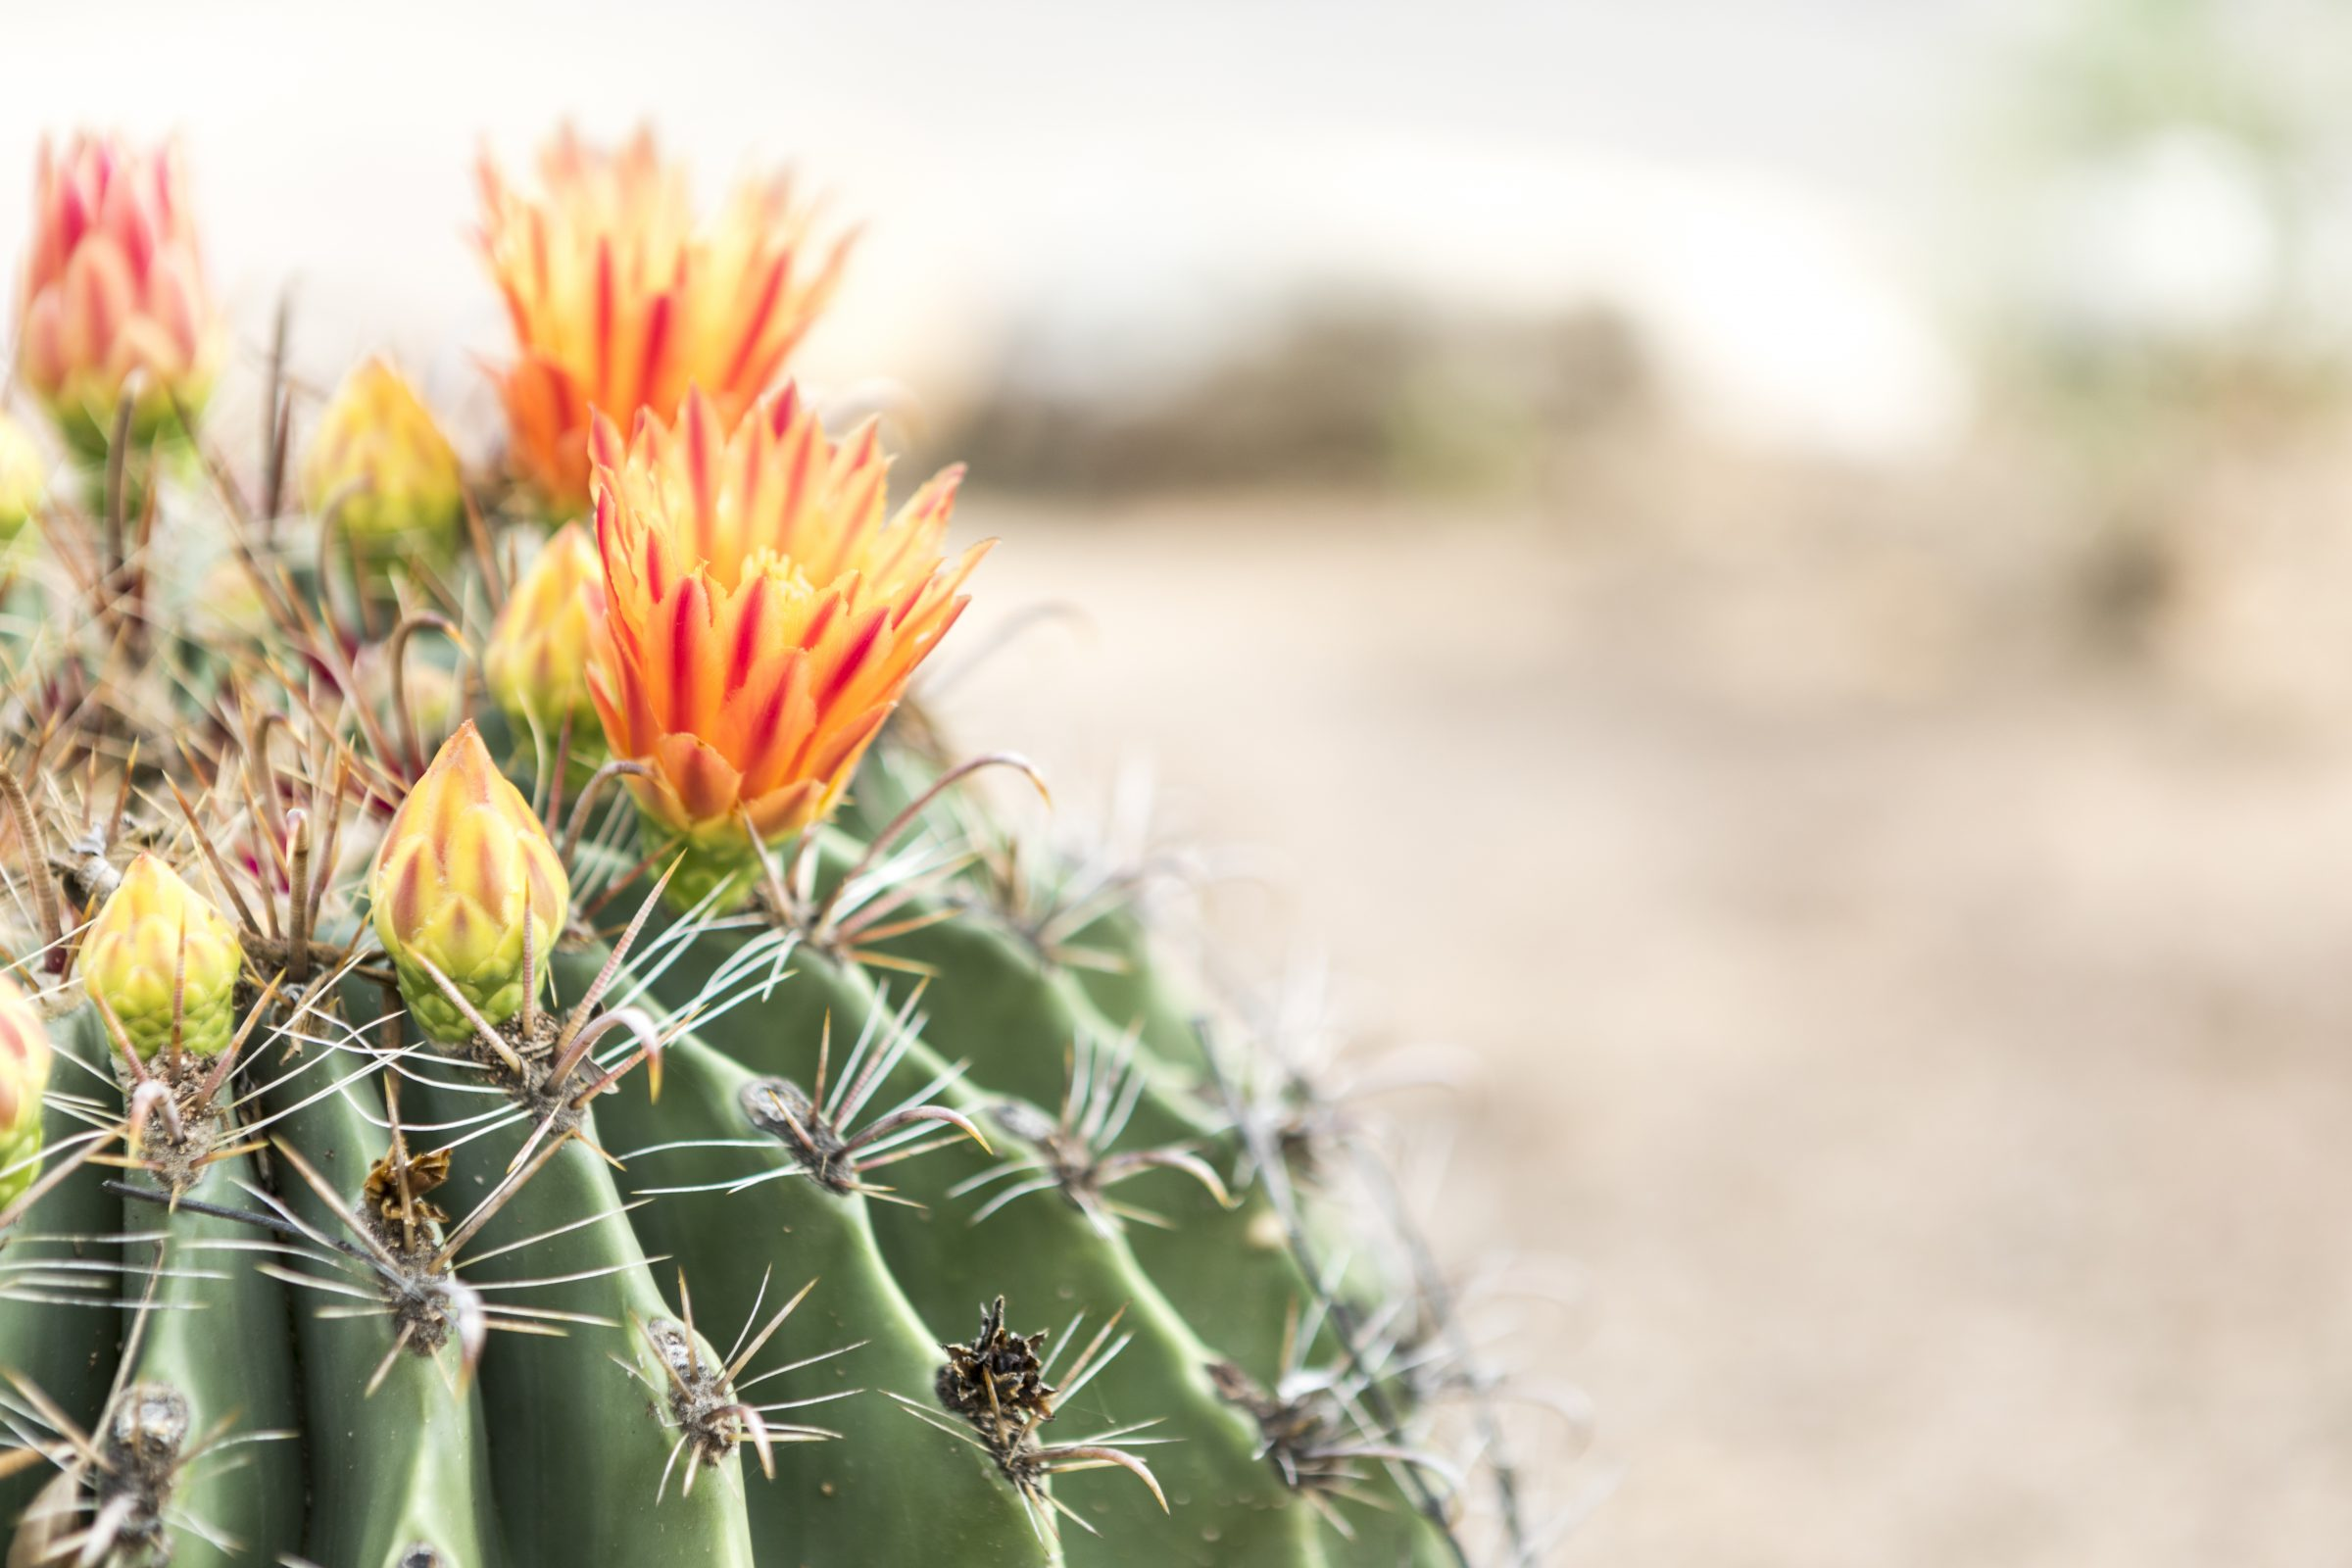 Cactus blooming on the grounds of Miraval Arizona.